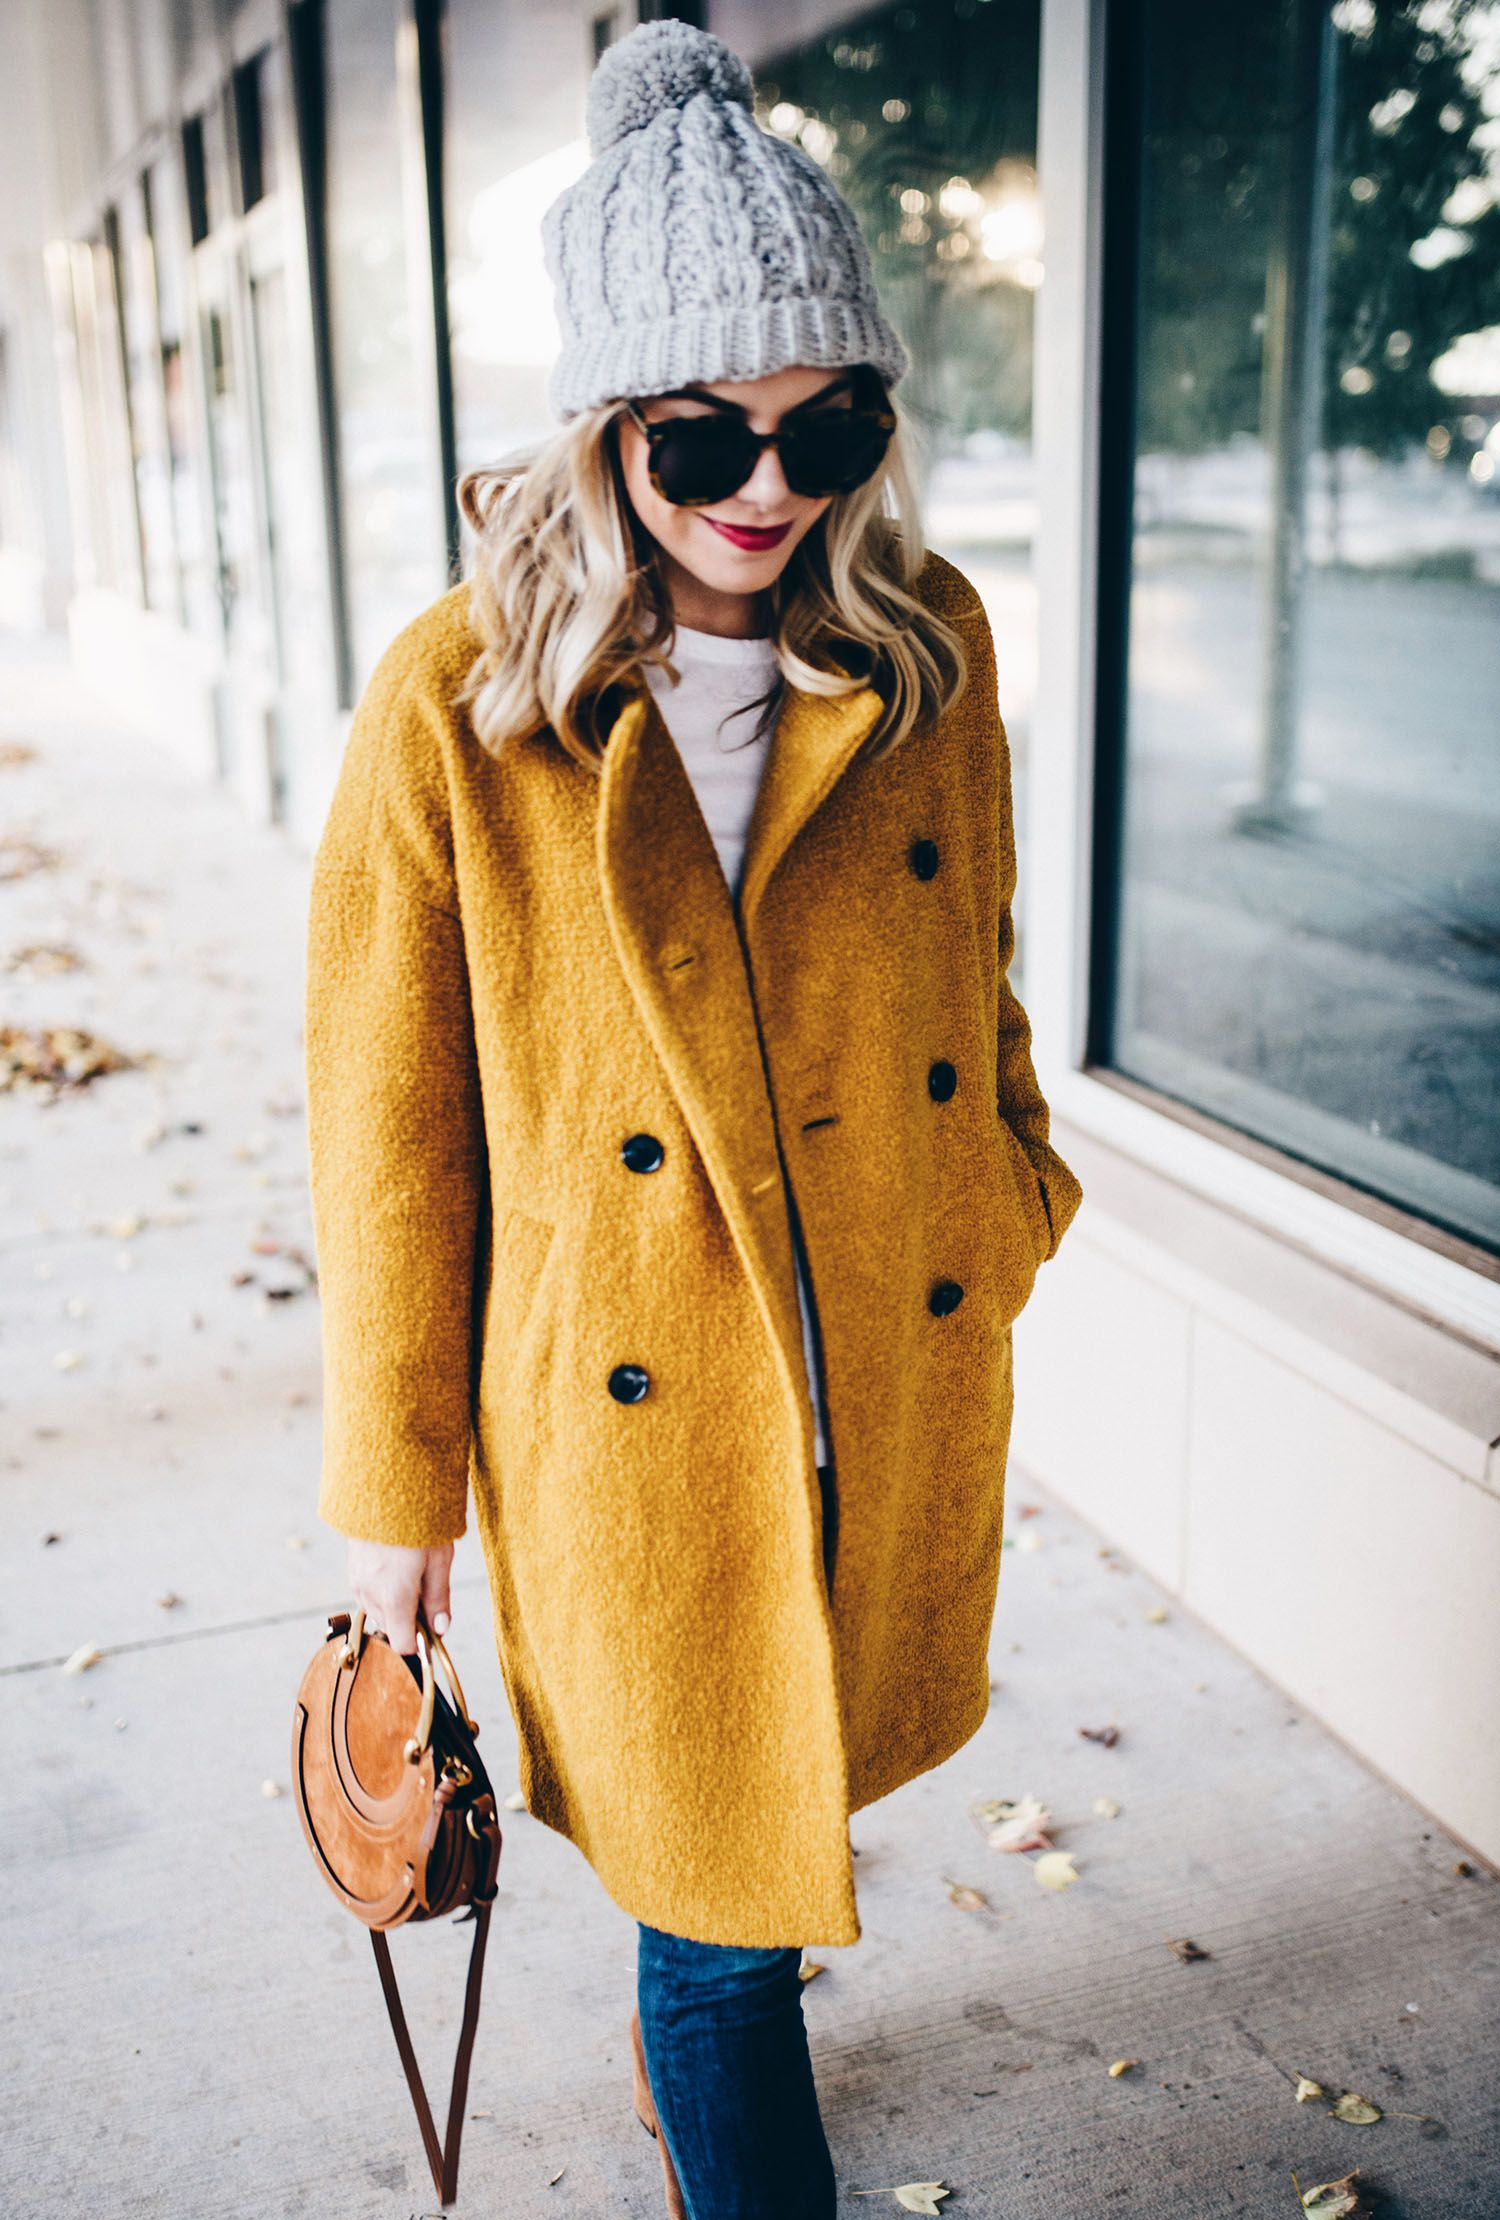 Bring On The Colorful Coats Mustard Yellow Coat Casual Winter Outfits Mustard Outfits